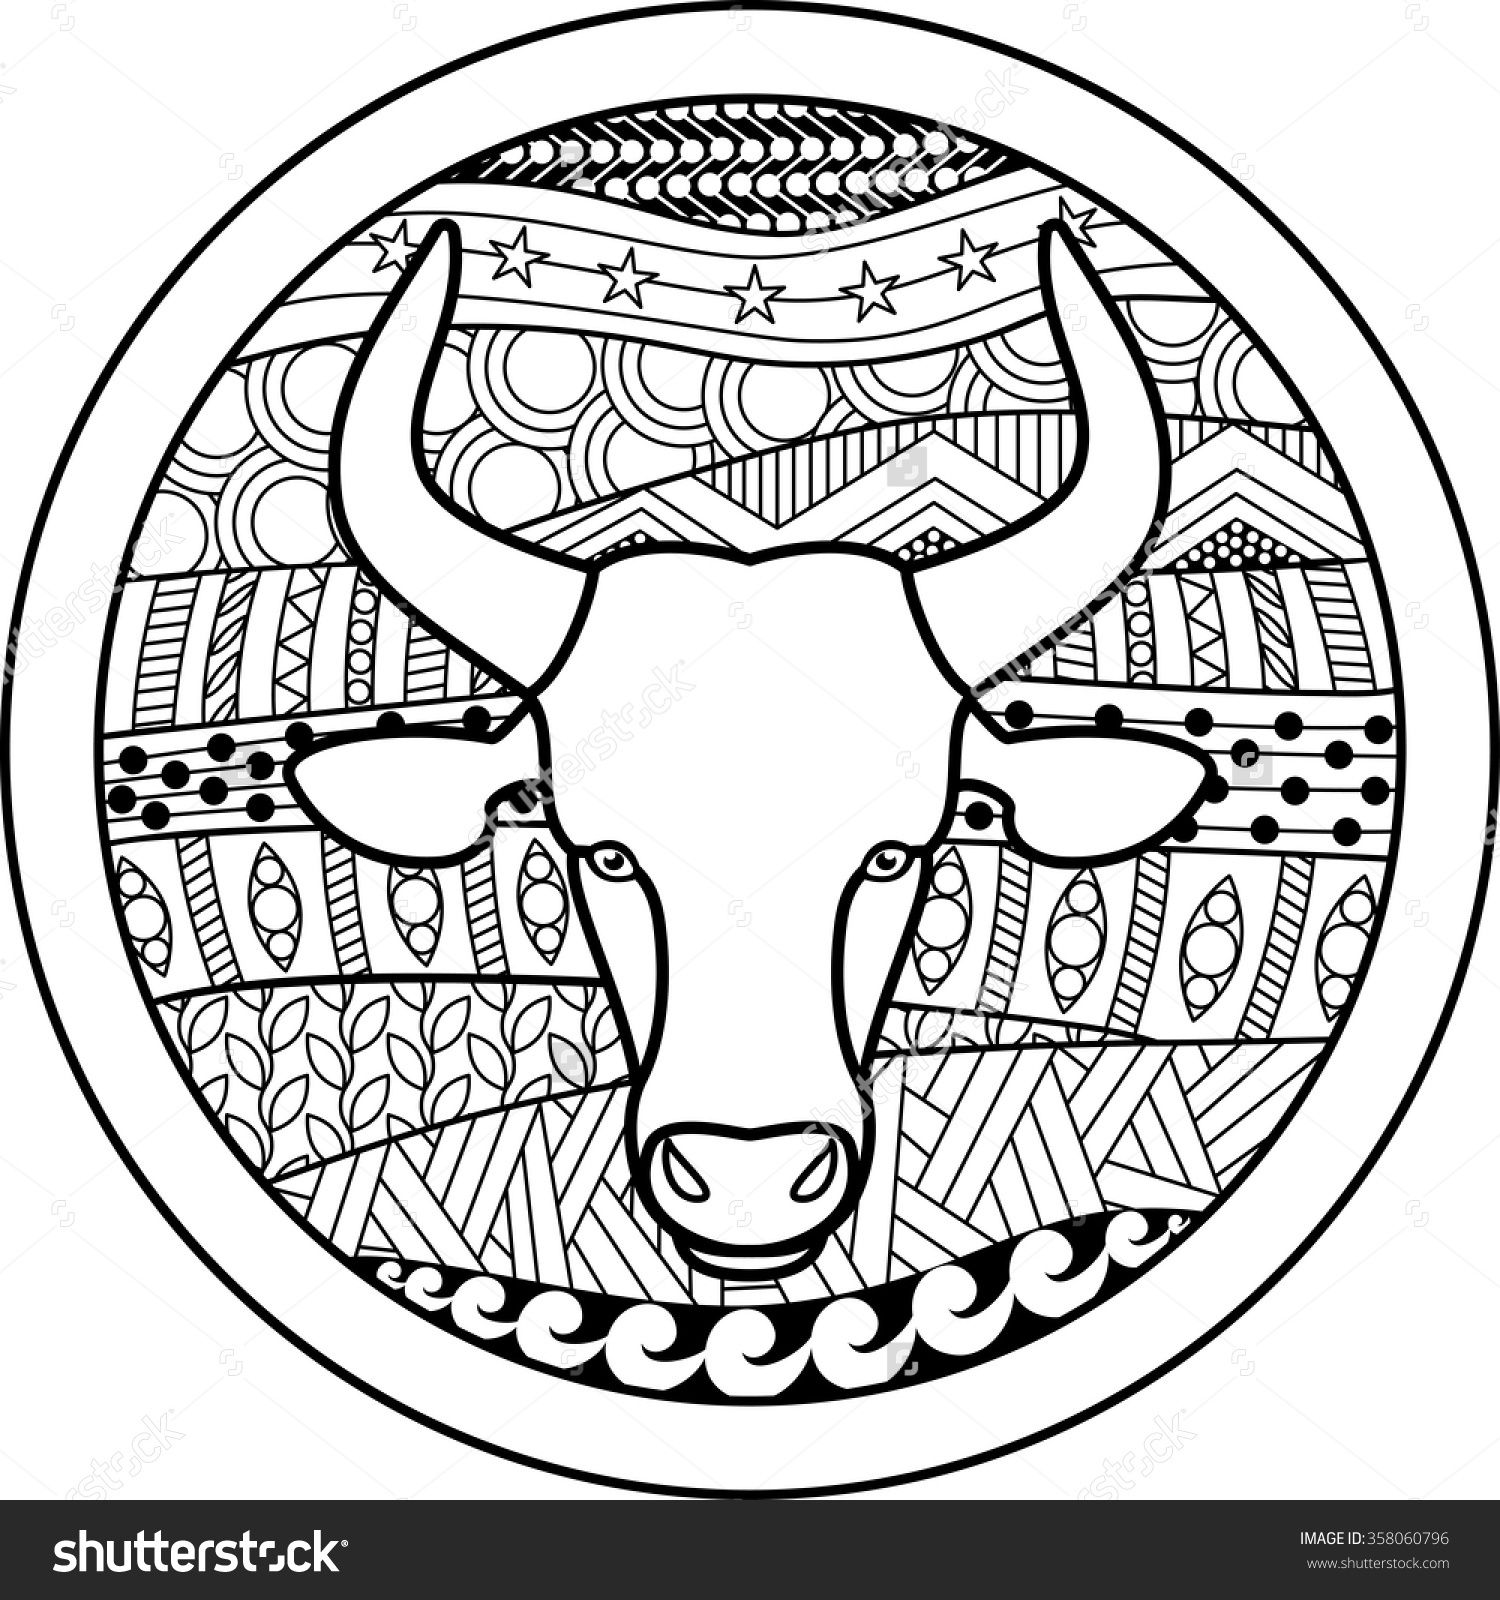 zodiac sign taurus zentangle coloring pinterest zodiac signs zodiac and zodiac signs taurus. Black Bedroom Furniture Sets. Home Design Ideas